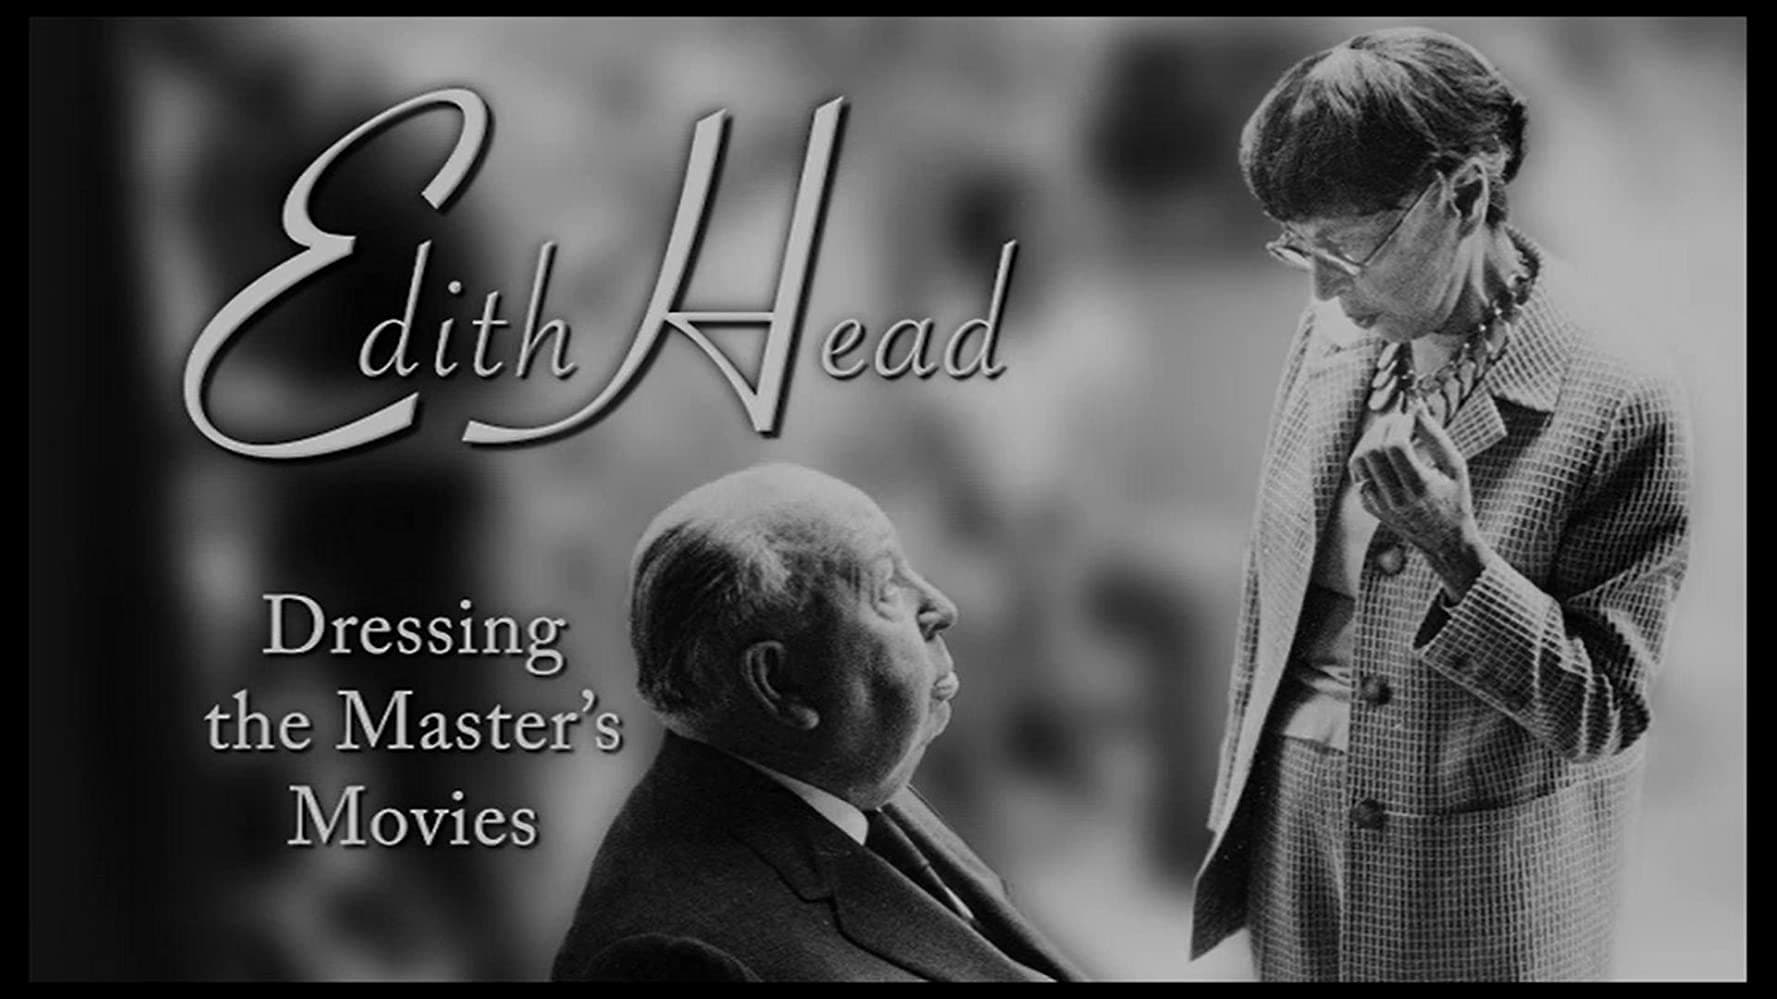 Edith Head: Dressing the Master's Movies (2008)